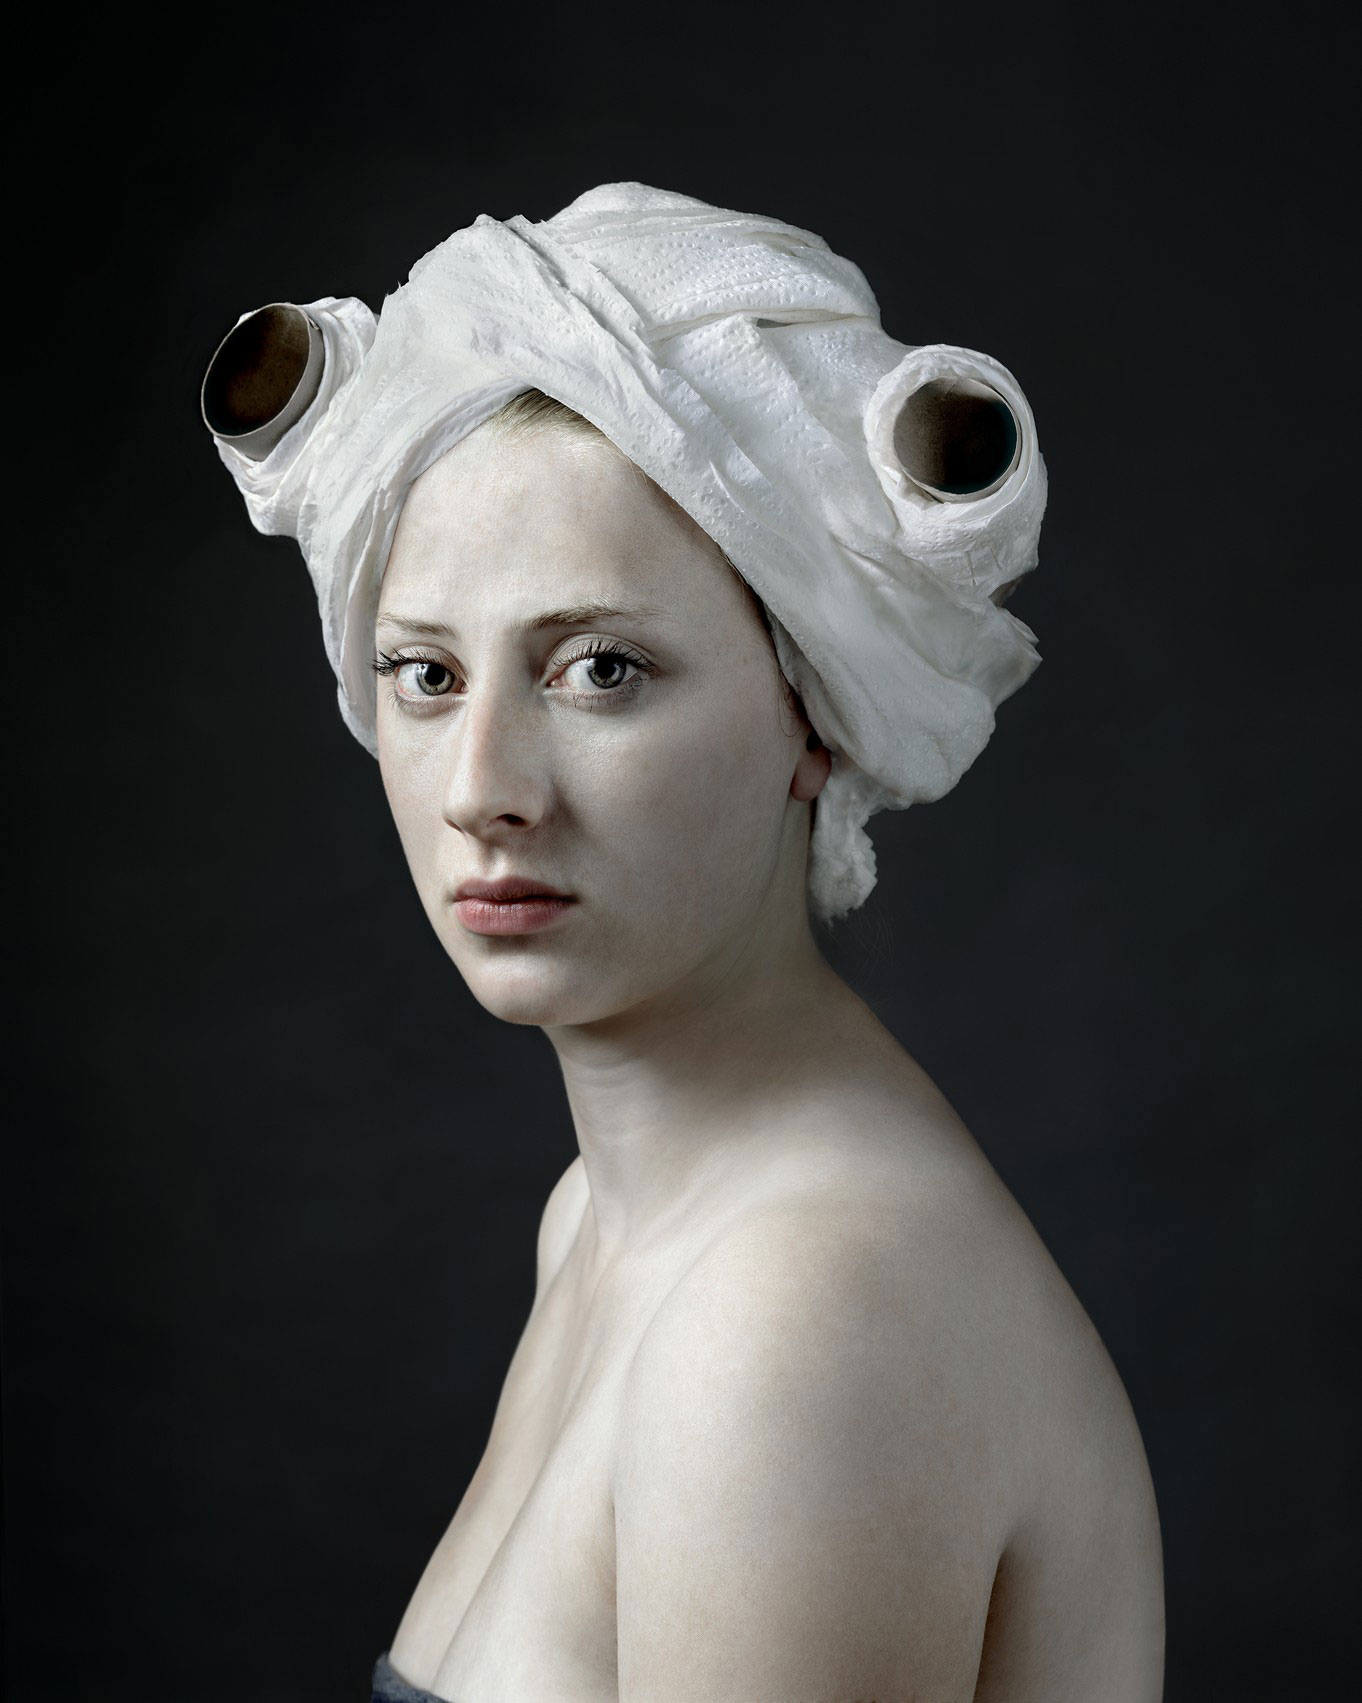 Hendrik Kerstens Photographs His Daughter in the Style of Dutch Masters with a Twist | Yellowtrace